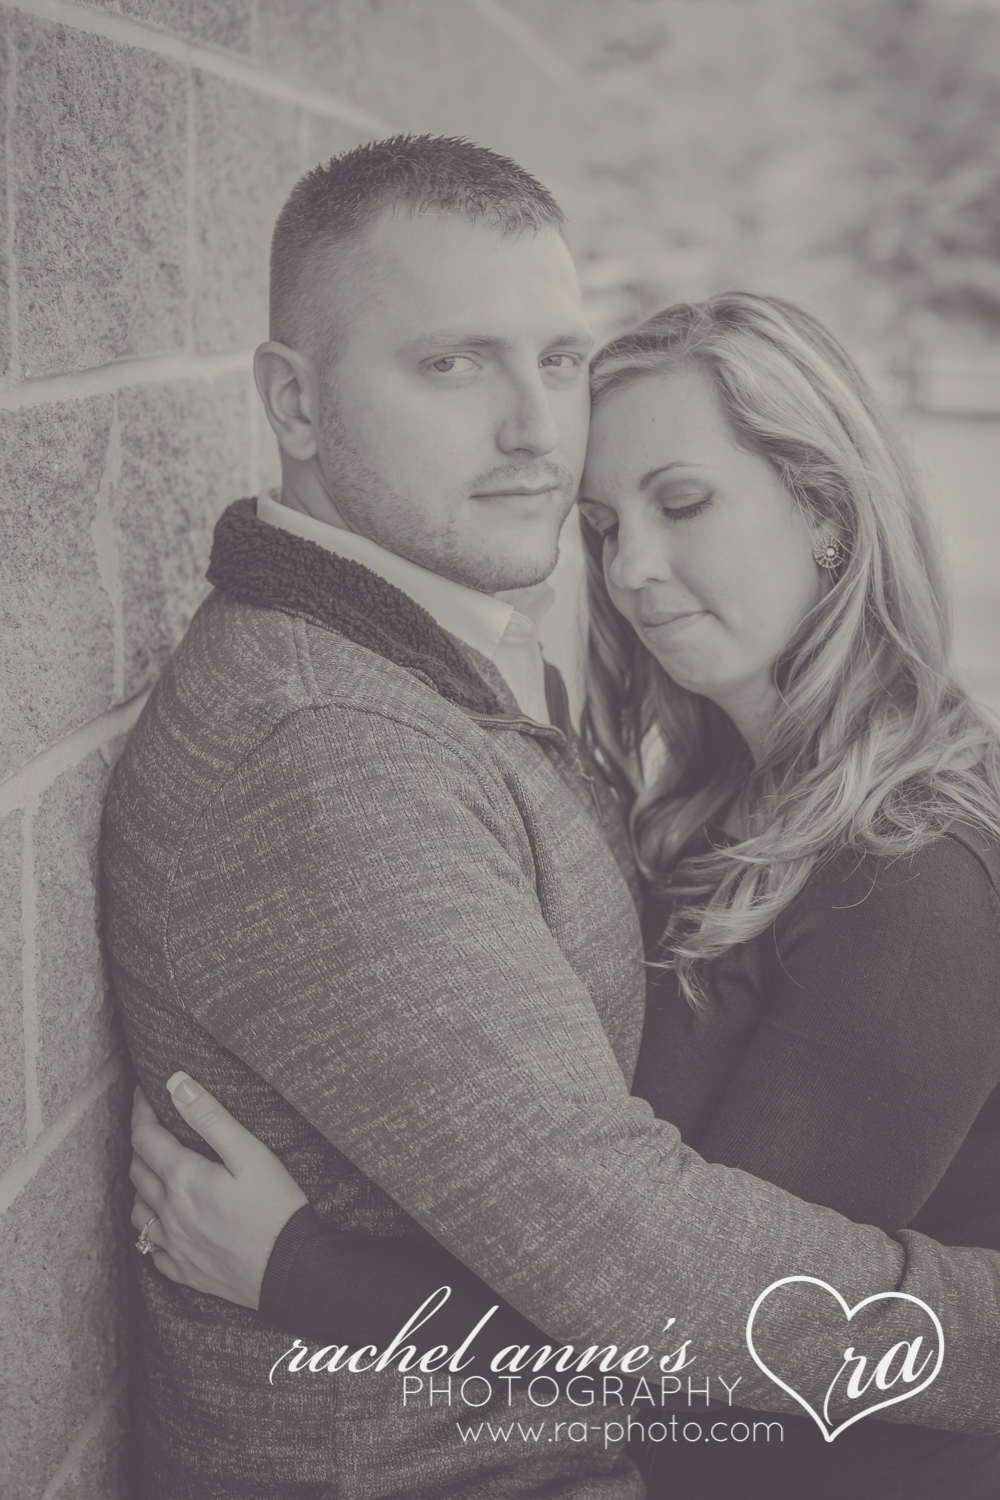 023-RHZ-PITTSBURGH PA ENGAGEMENT PHOTOGRAPHY.jpg